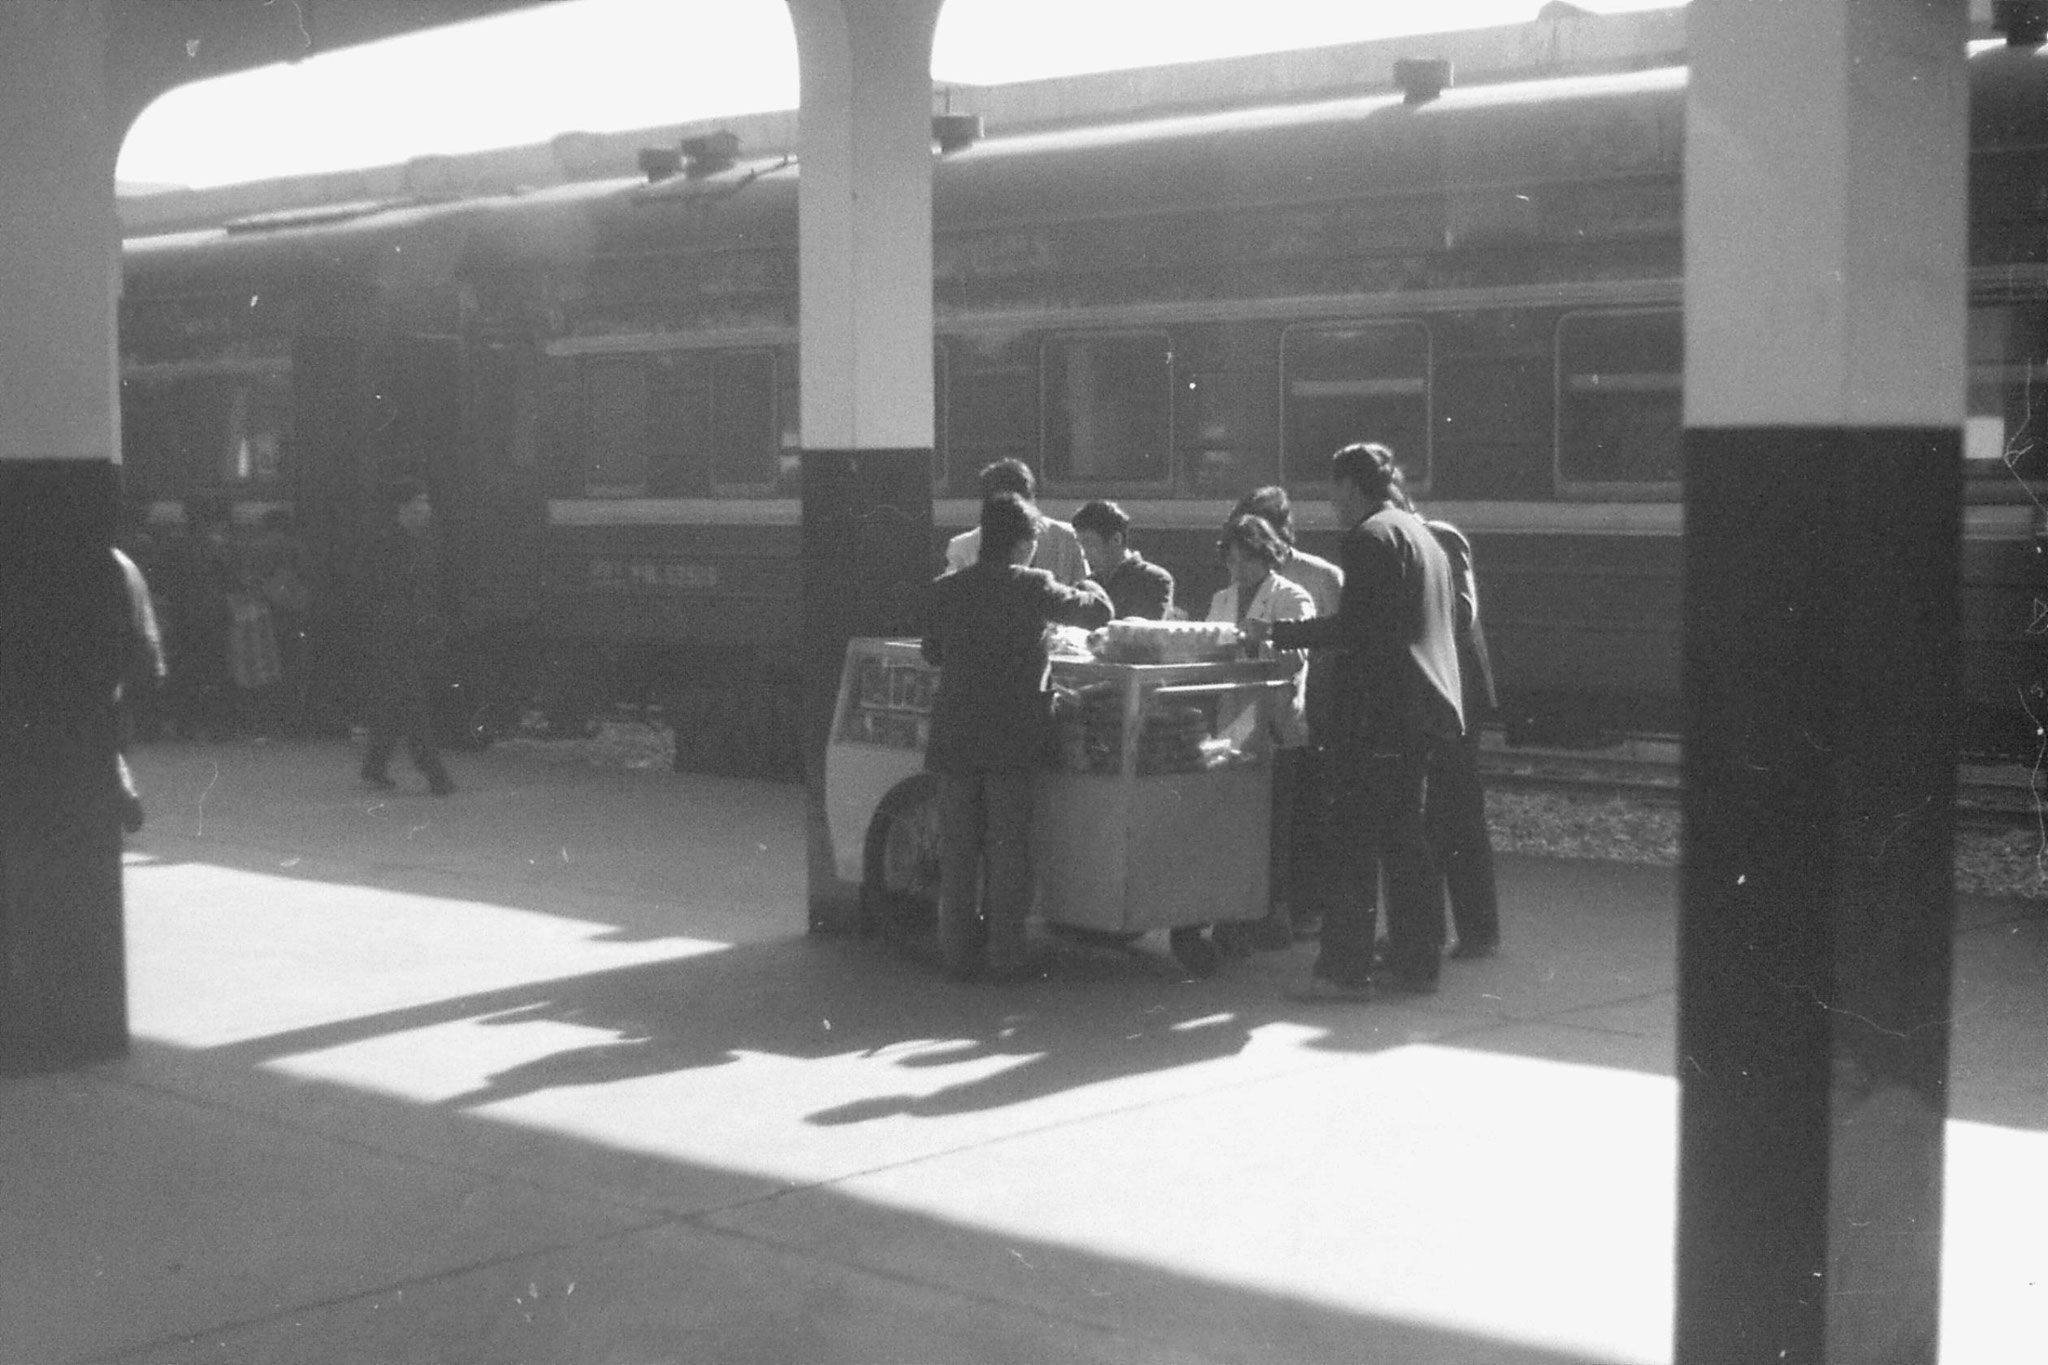 13/12/1988: 7: train from Nanjing to Shanghai